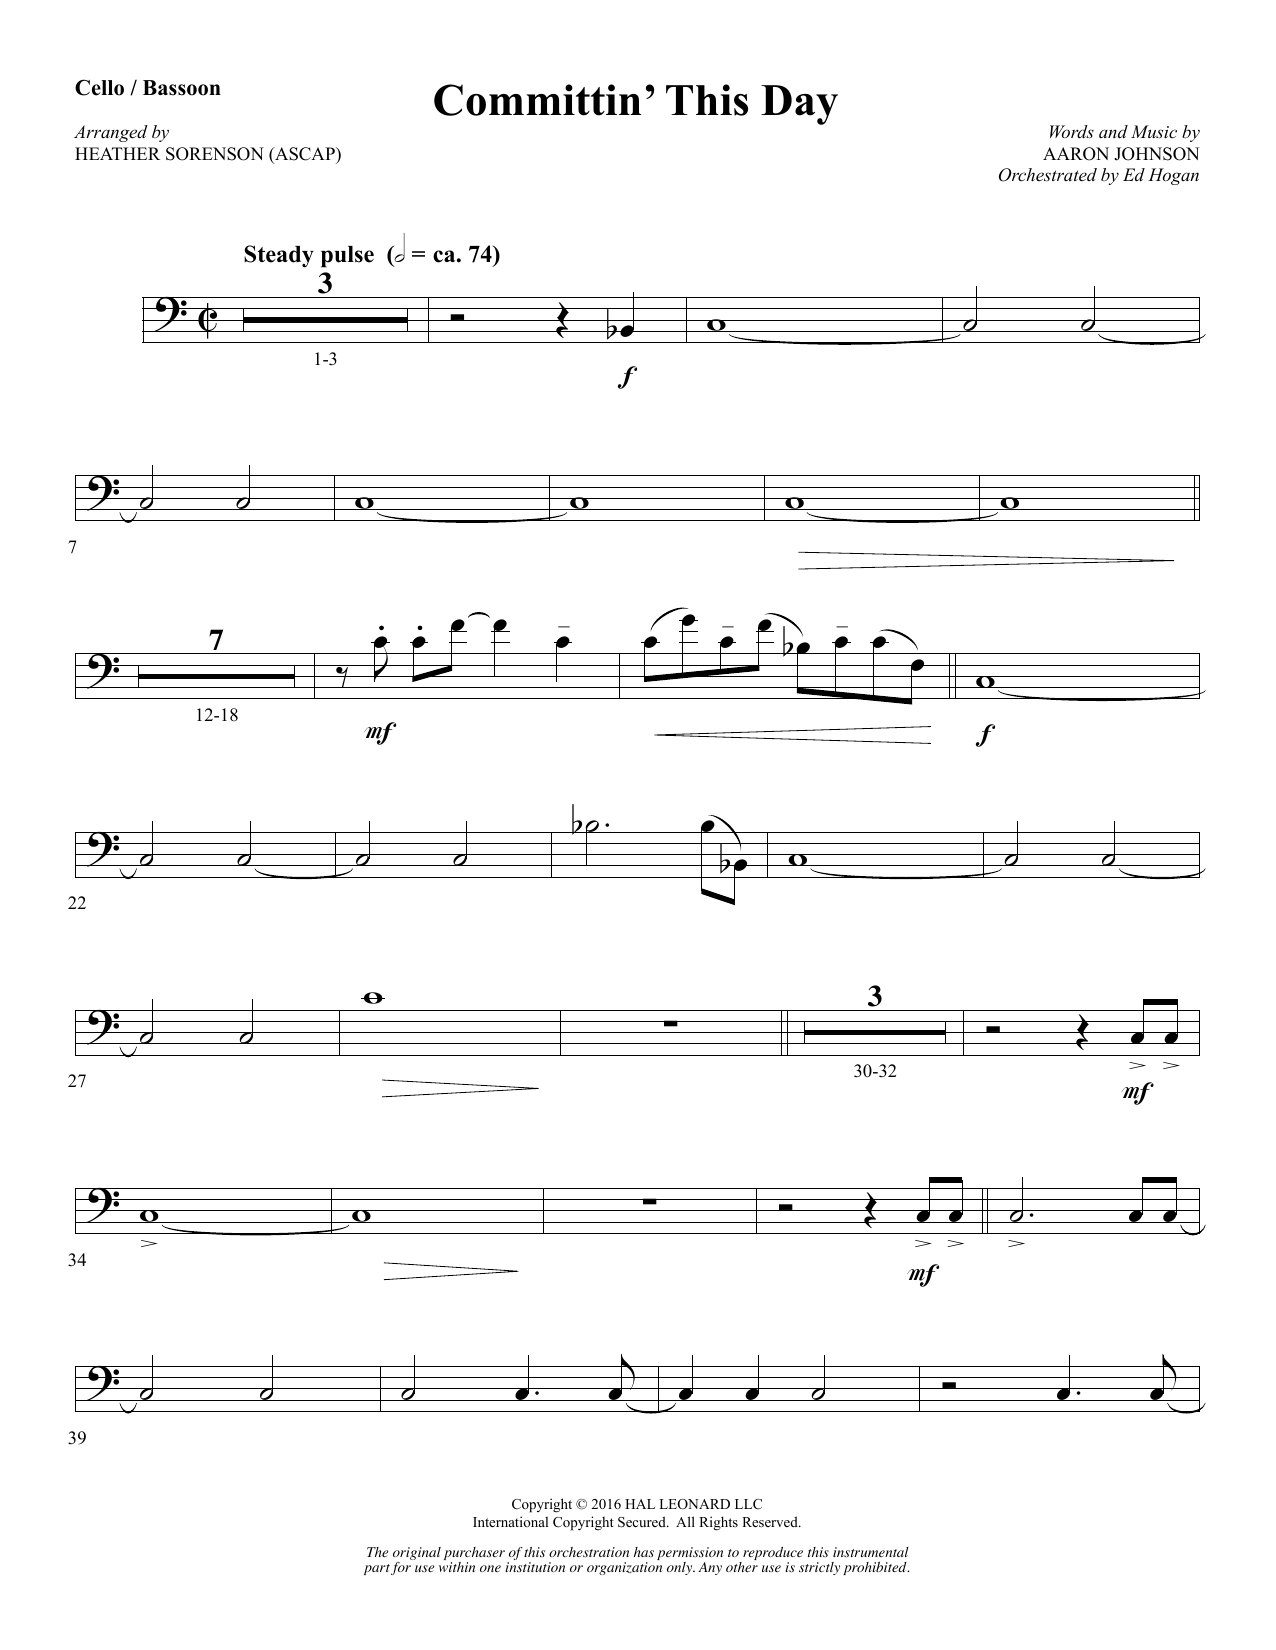 Heather Sorenson Committin' This Day - Cello (Opt. Bassoon) sheet music notes and chords. Download Printable PDF.